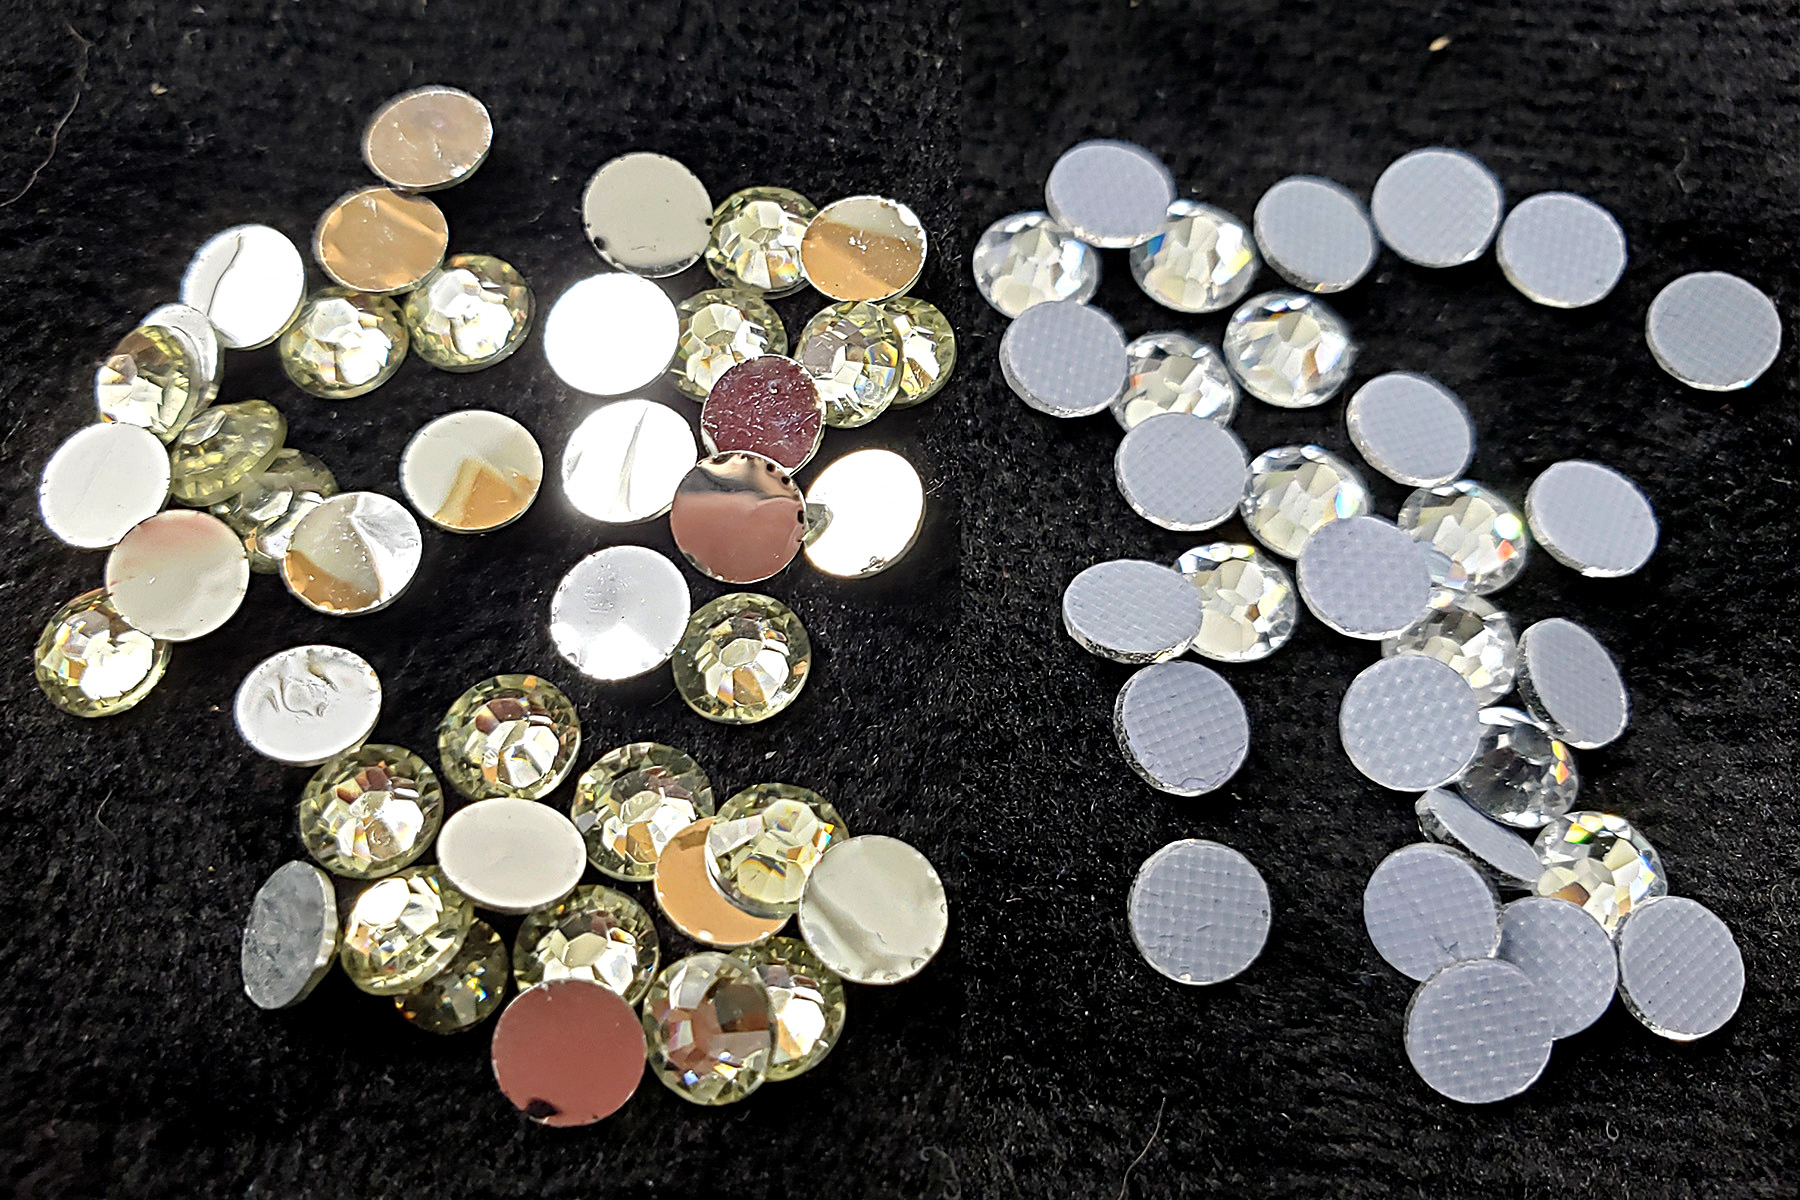 A side by side image comparing two small piles of clear rhinestones, against a black background. The crystals in the pile on the right have a textured backing.